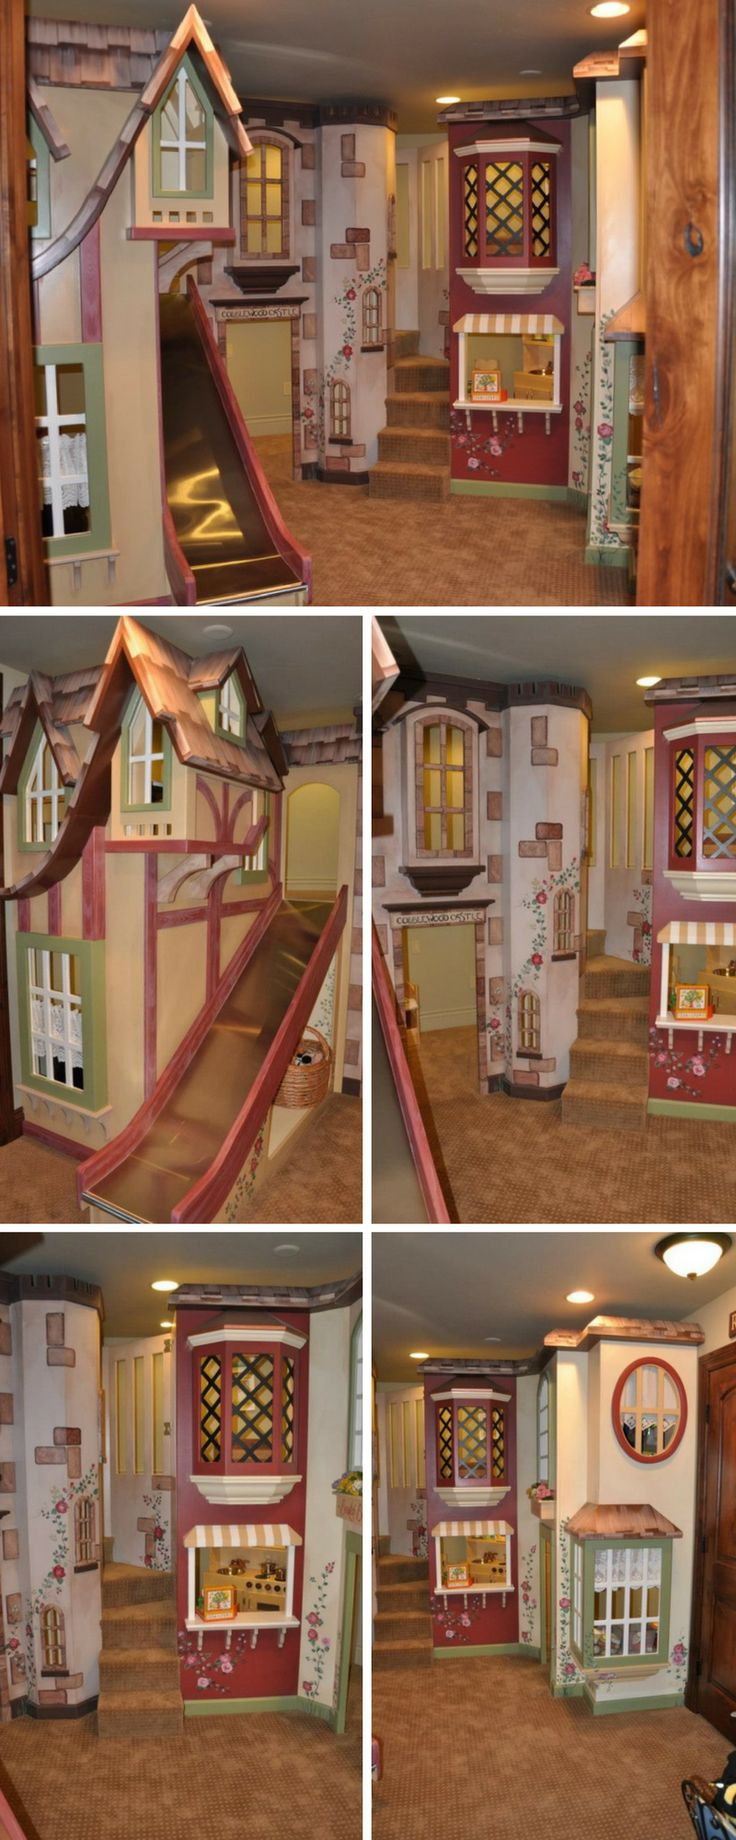 A cottage themed kids indoor playhouse inside a round room? Surely it doesn't get any better than this! Click to learn more about the undeniably charming Cobblewood Castle!